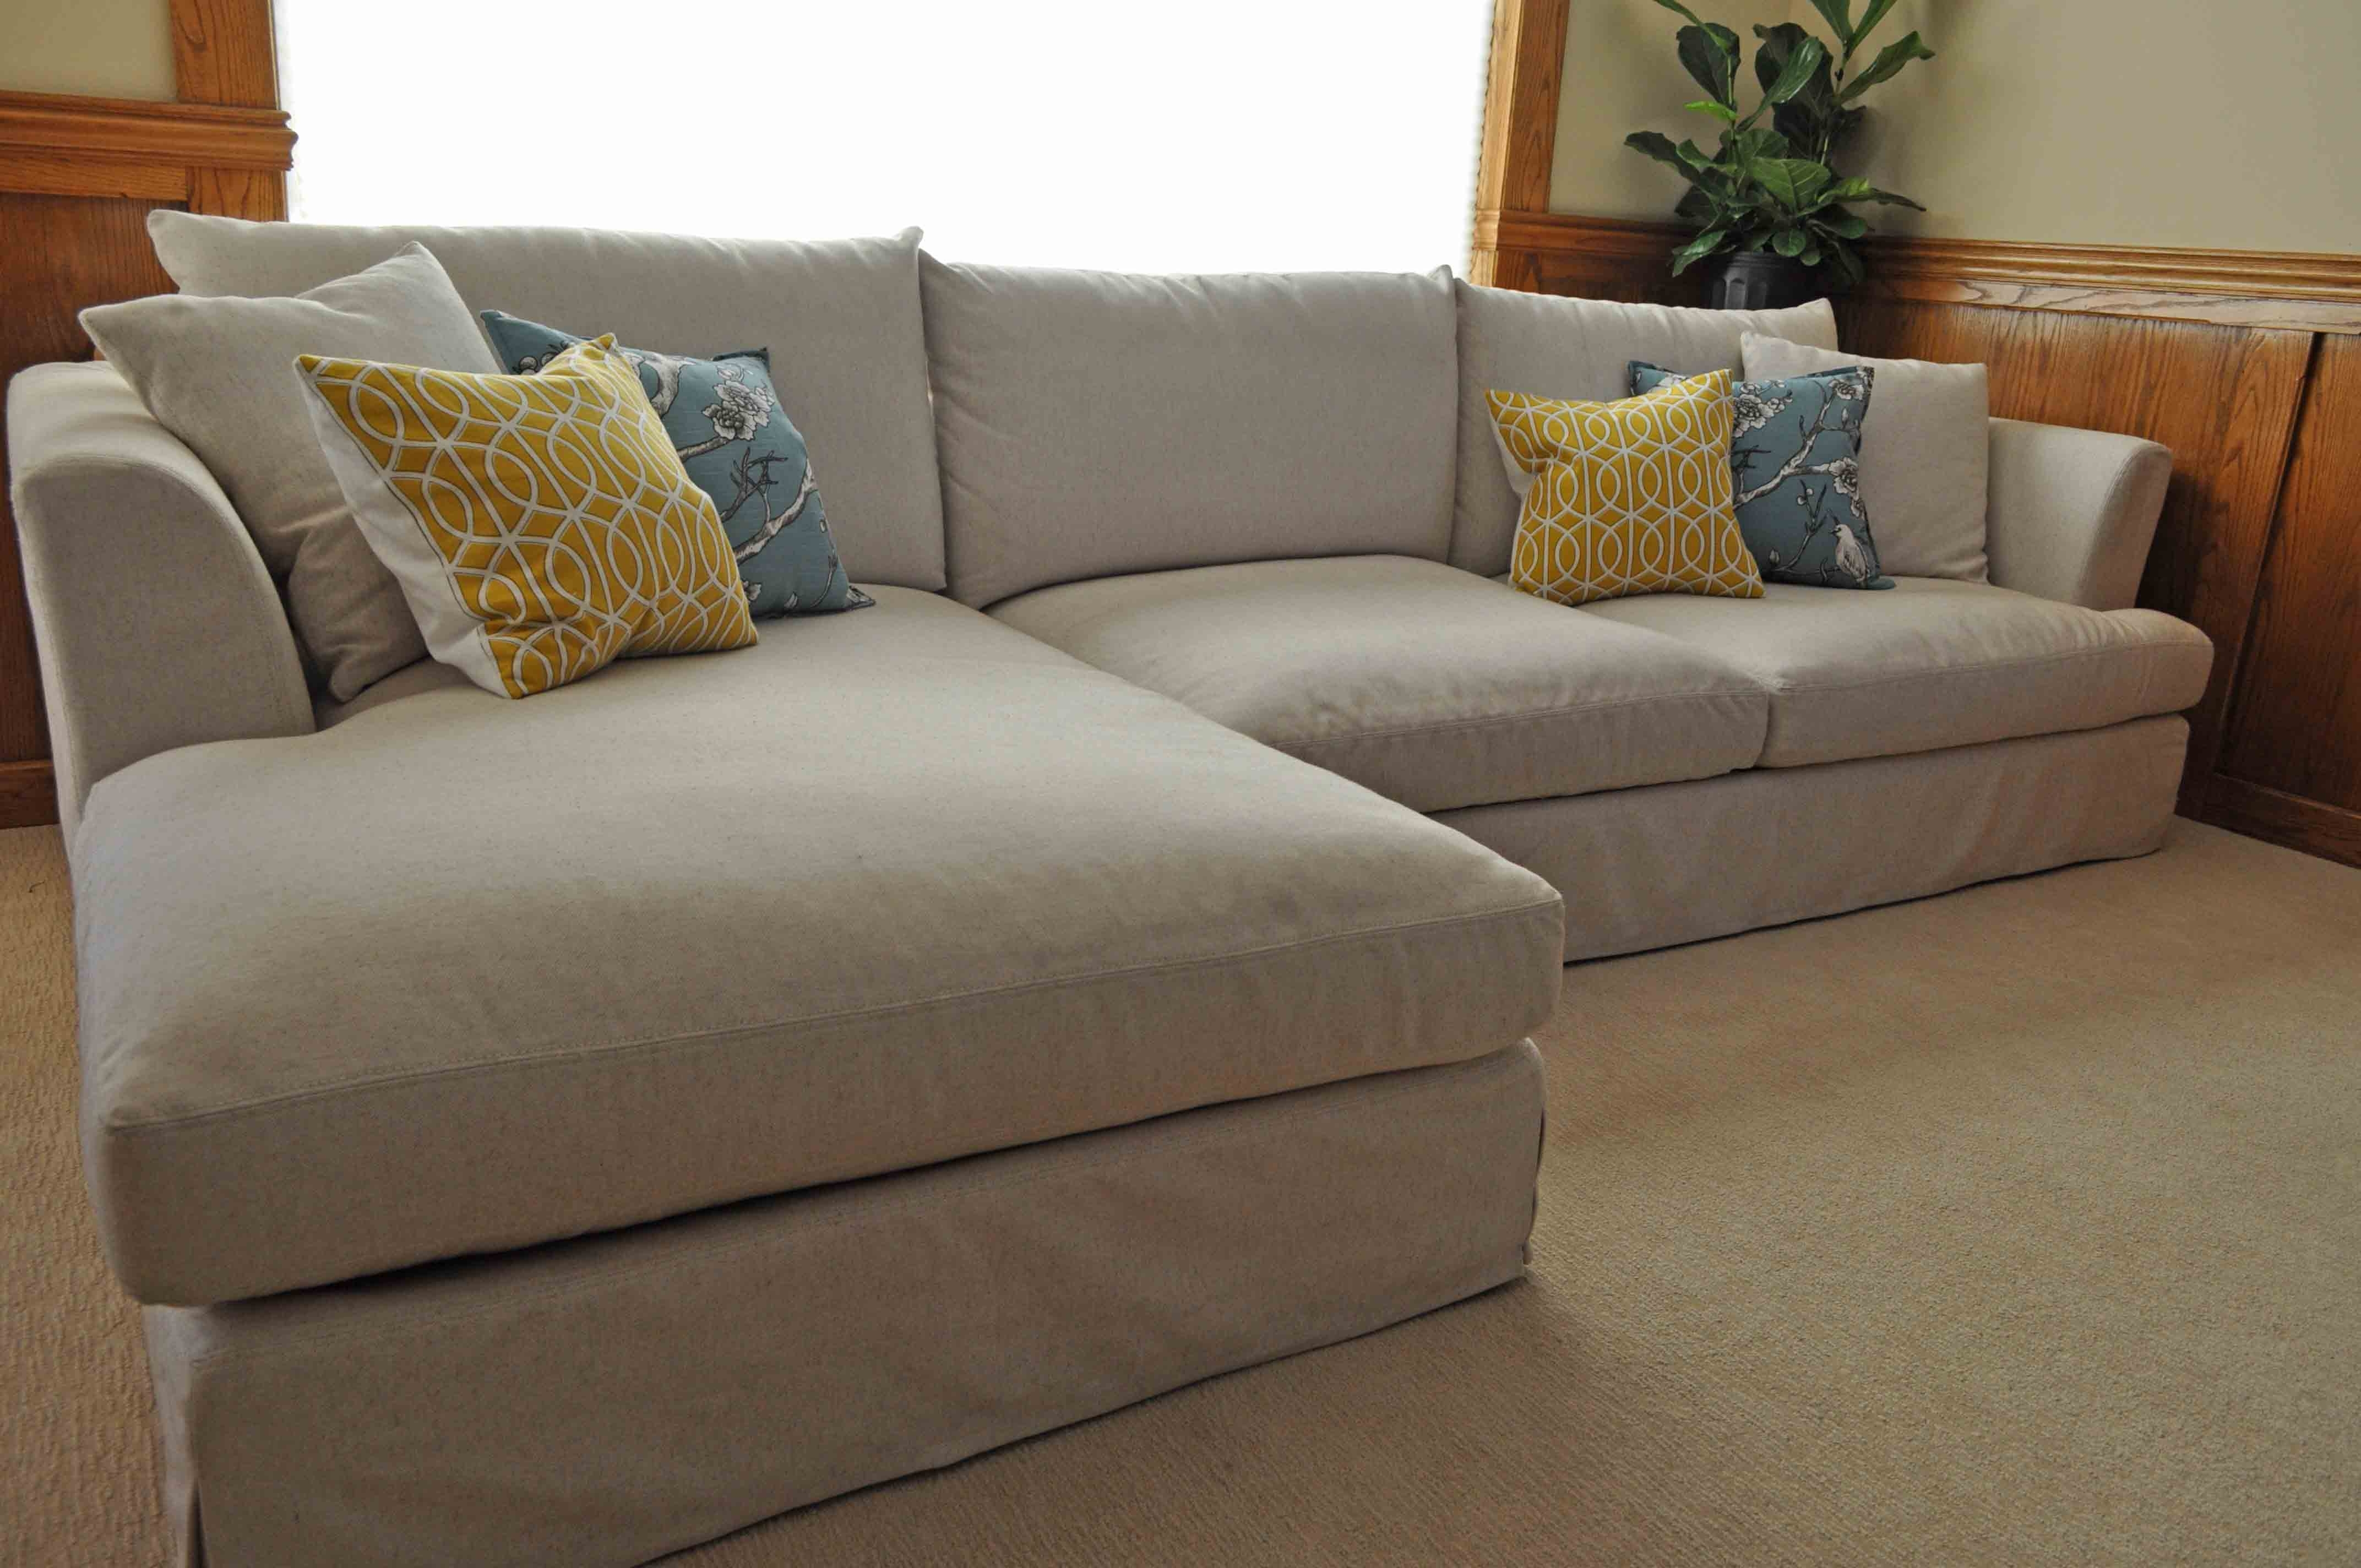 Recent Decorating: Using Tremendous Oversized Couch For Lovely Living With Regard To Deep Seat Sectionals With Chaise (View 8 of 15)